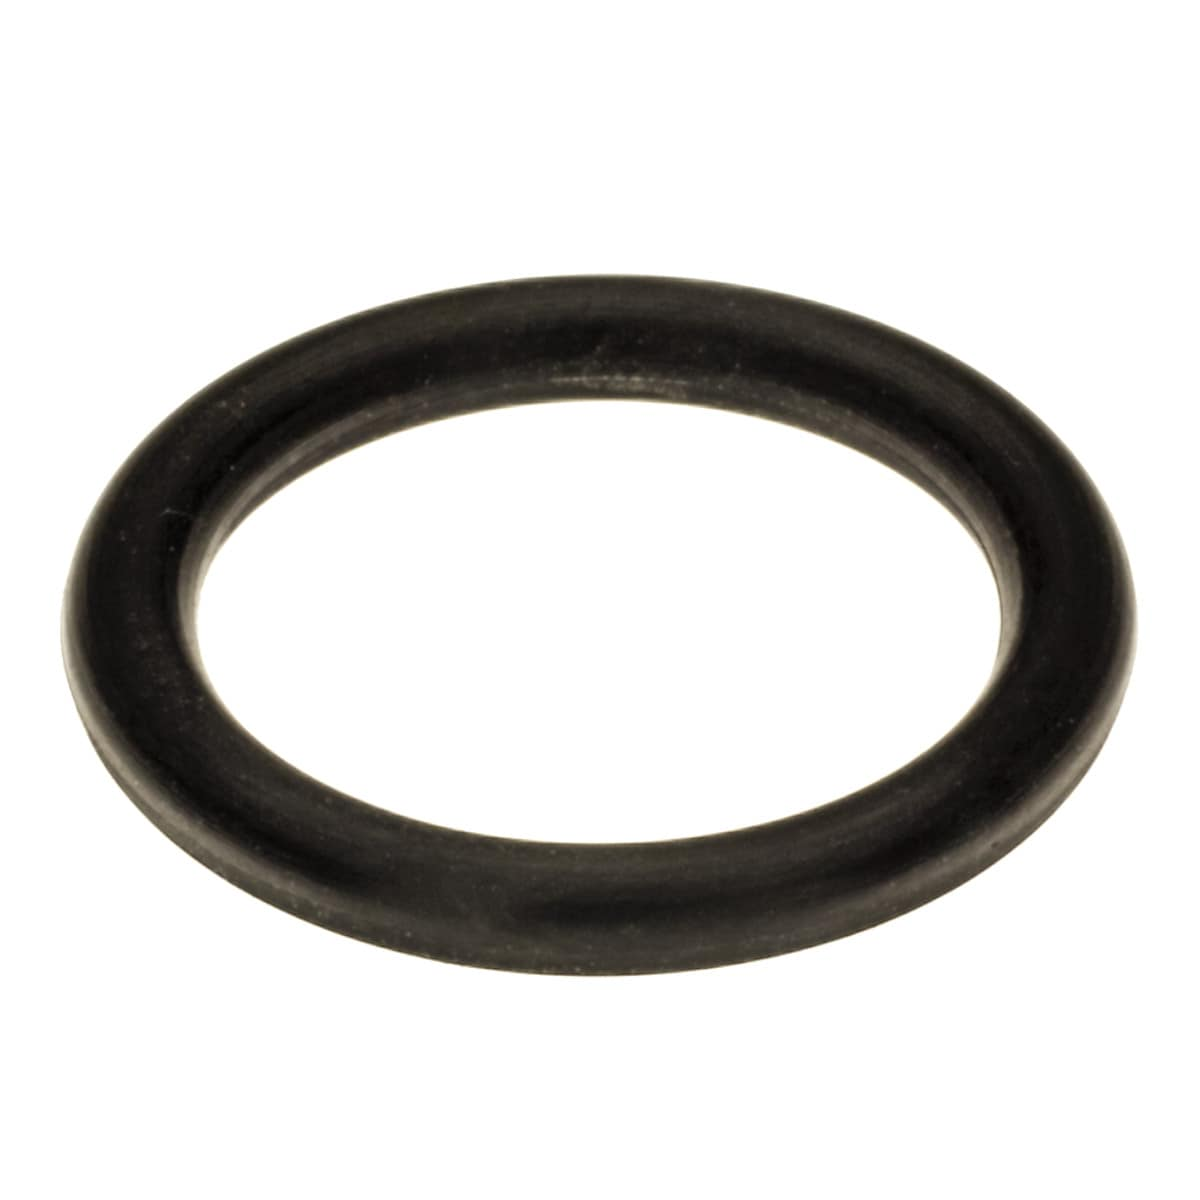 O-ring Nilfisk 19,4 x 2,3 mm